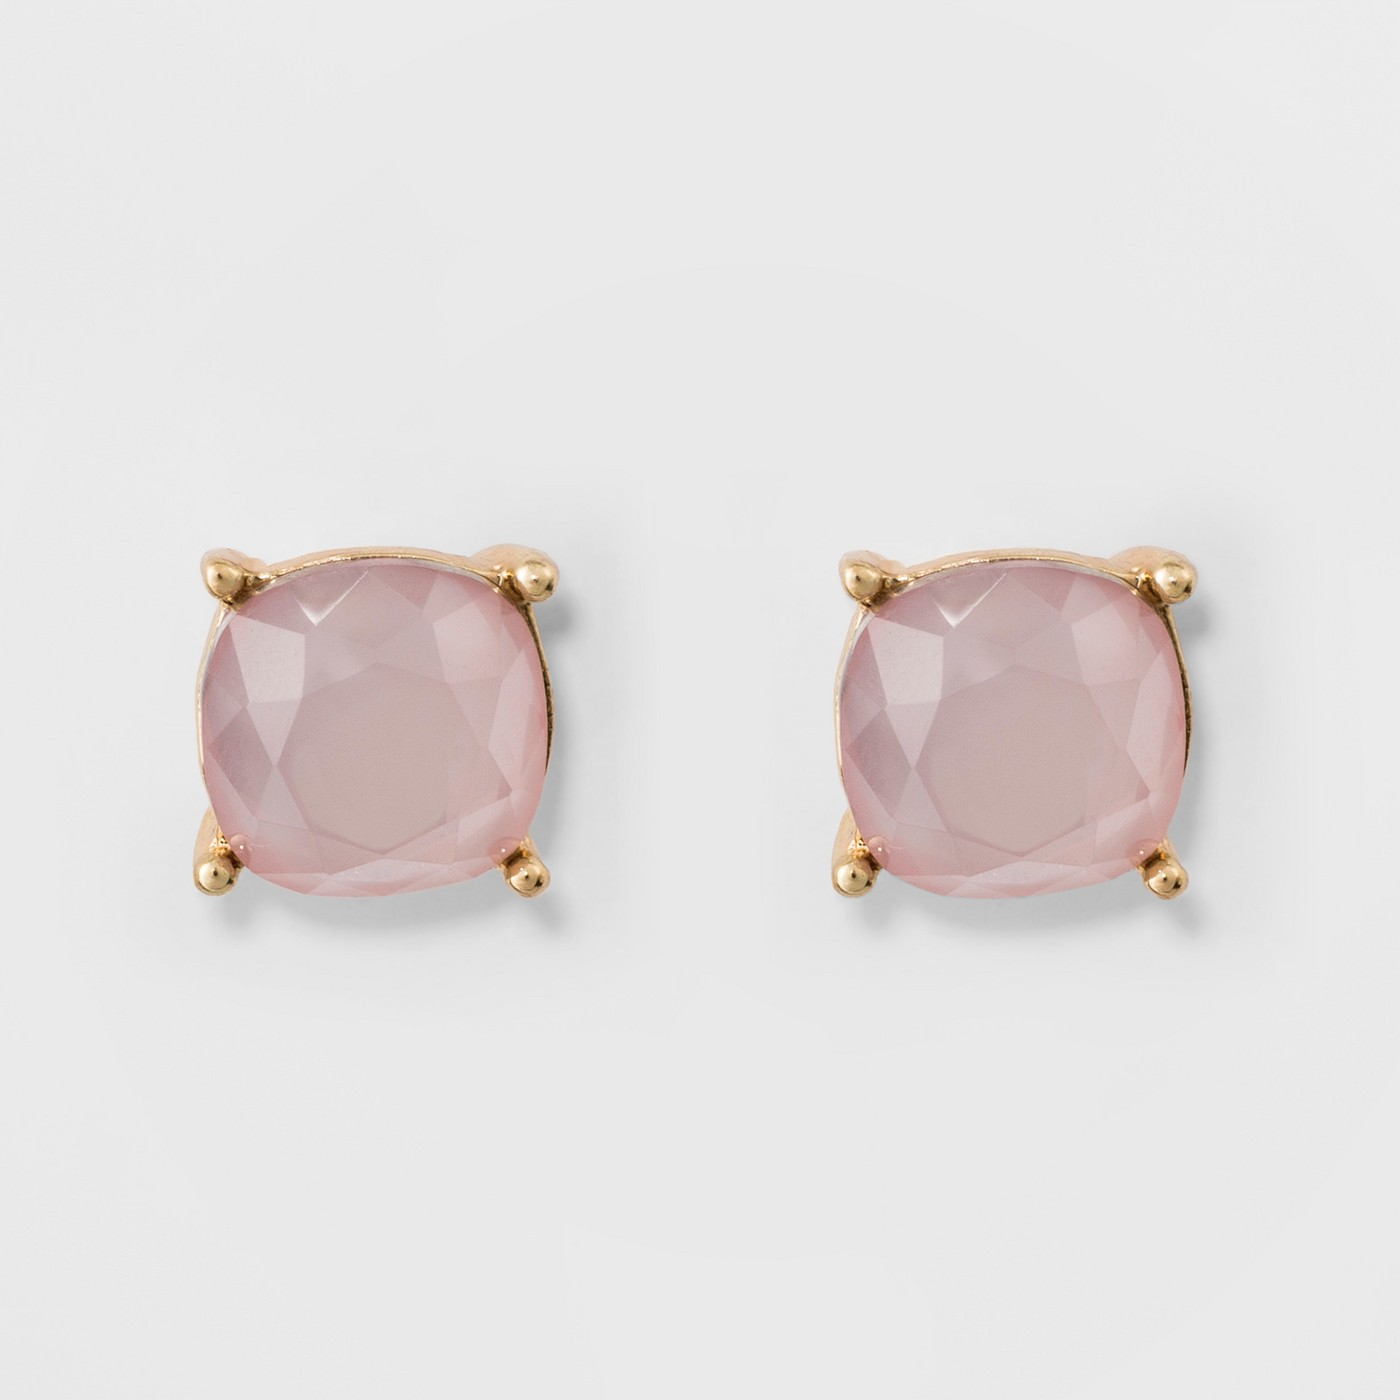 Stud Earrings - A New Day™ Gold/Pink - image 1 of 2